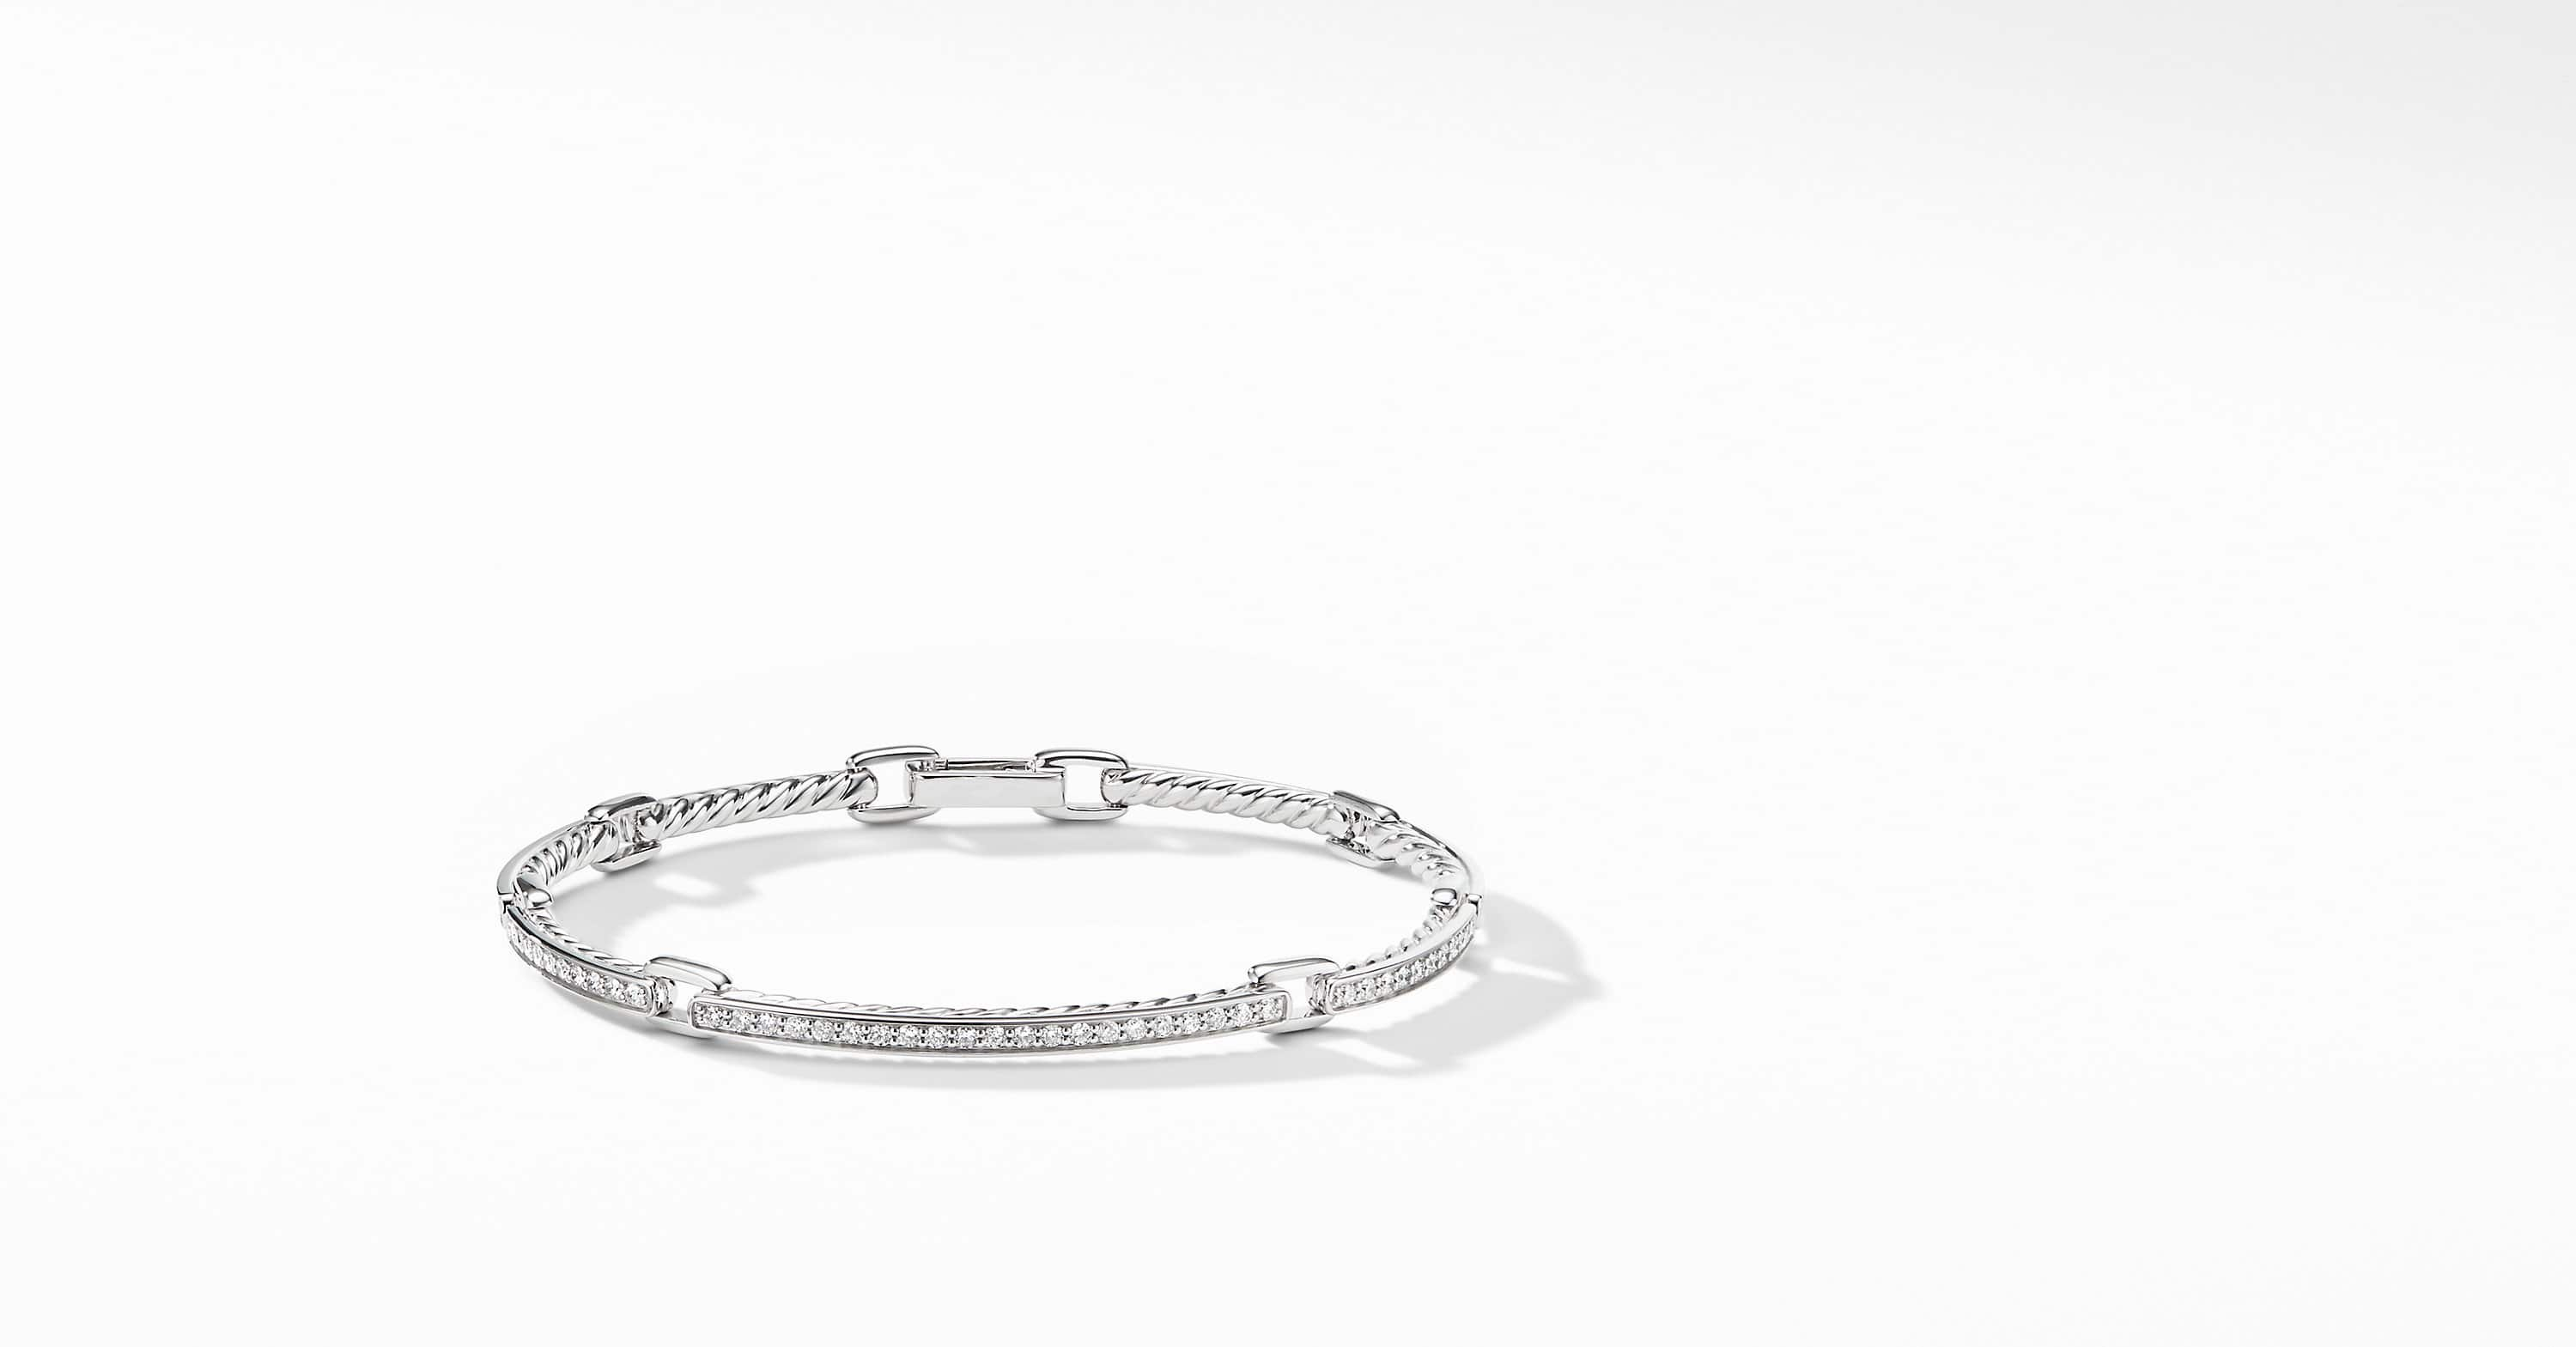 Petite Pavé Link Bracelet with Diamonds in 18K White Gold